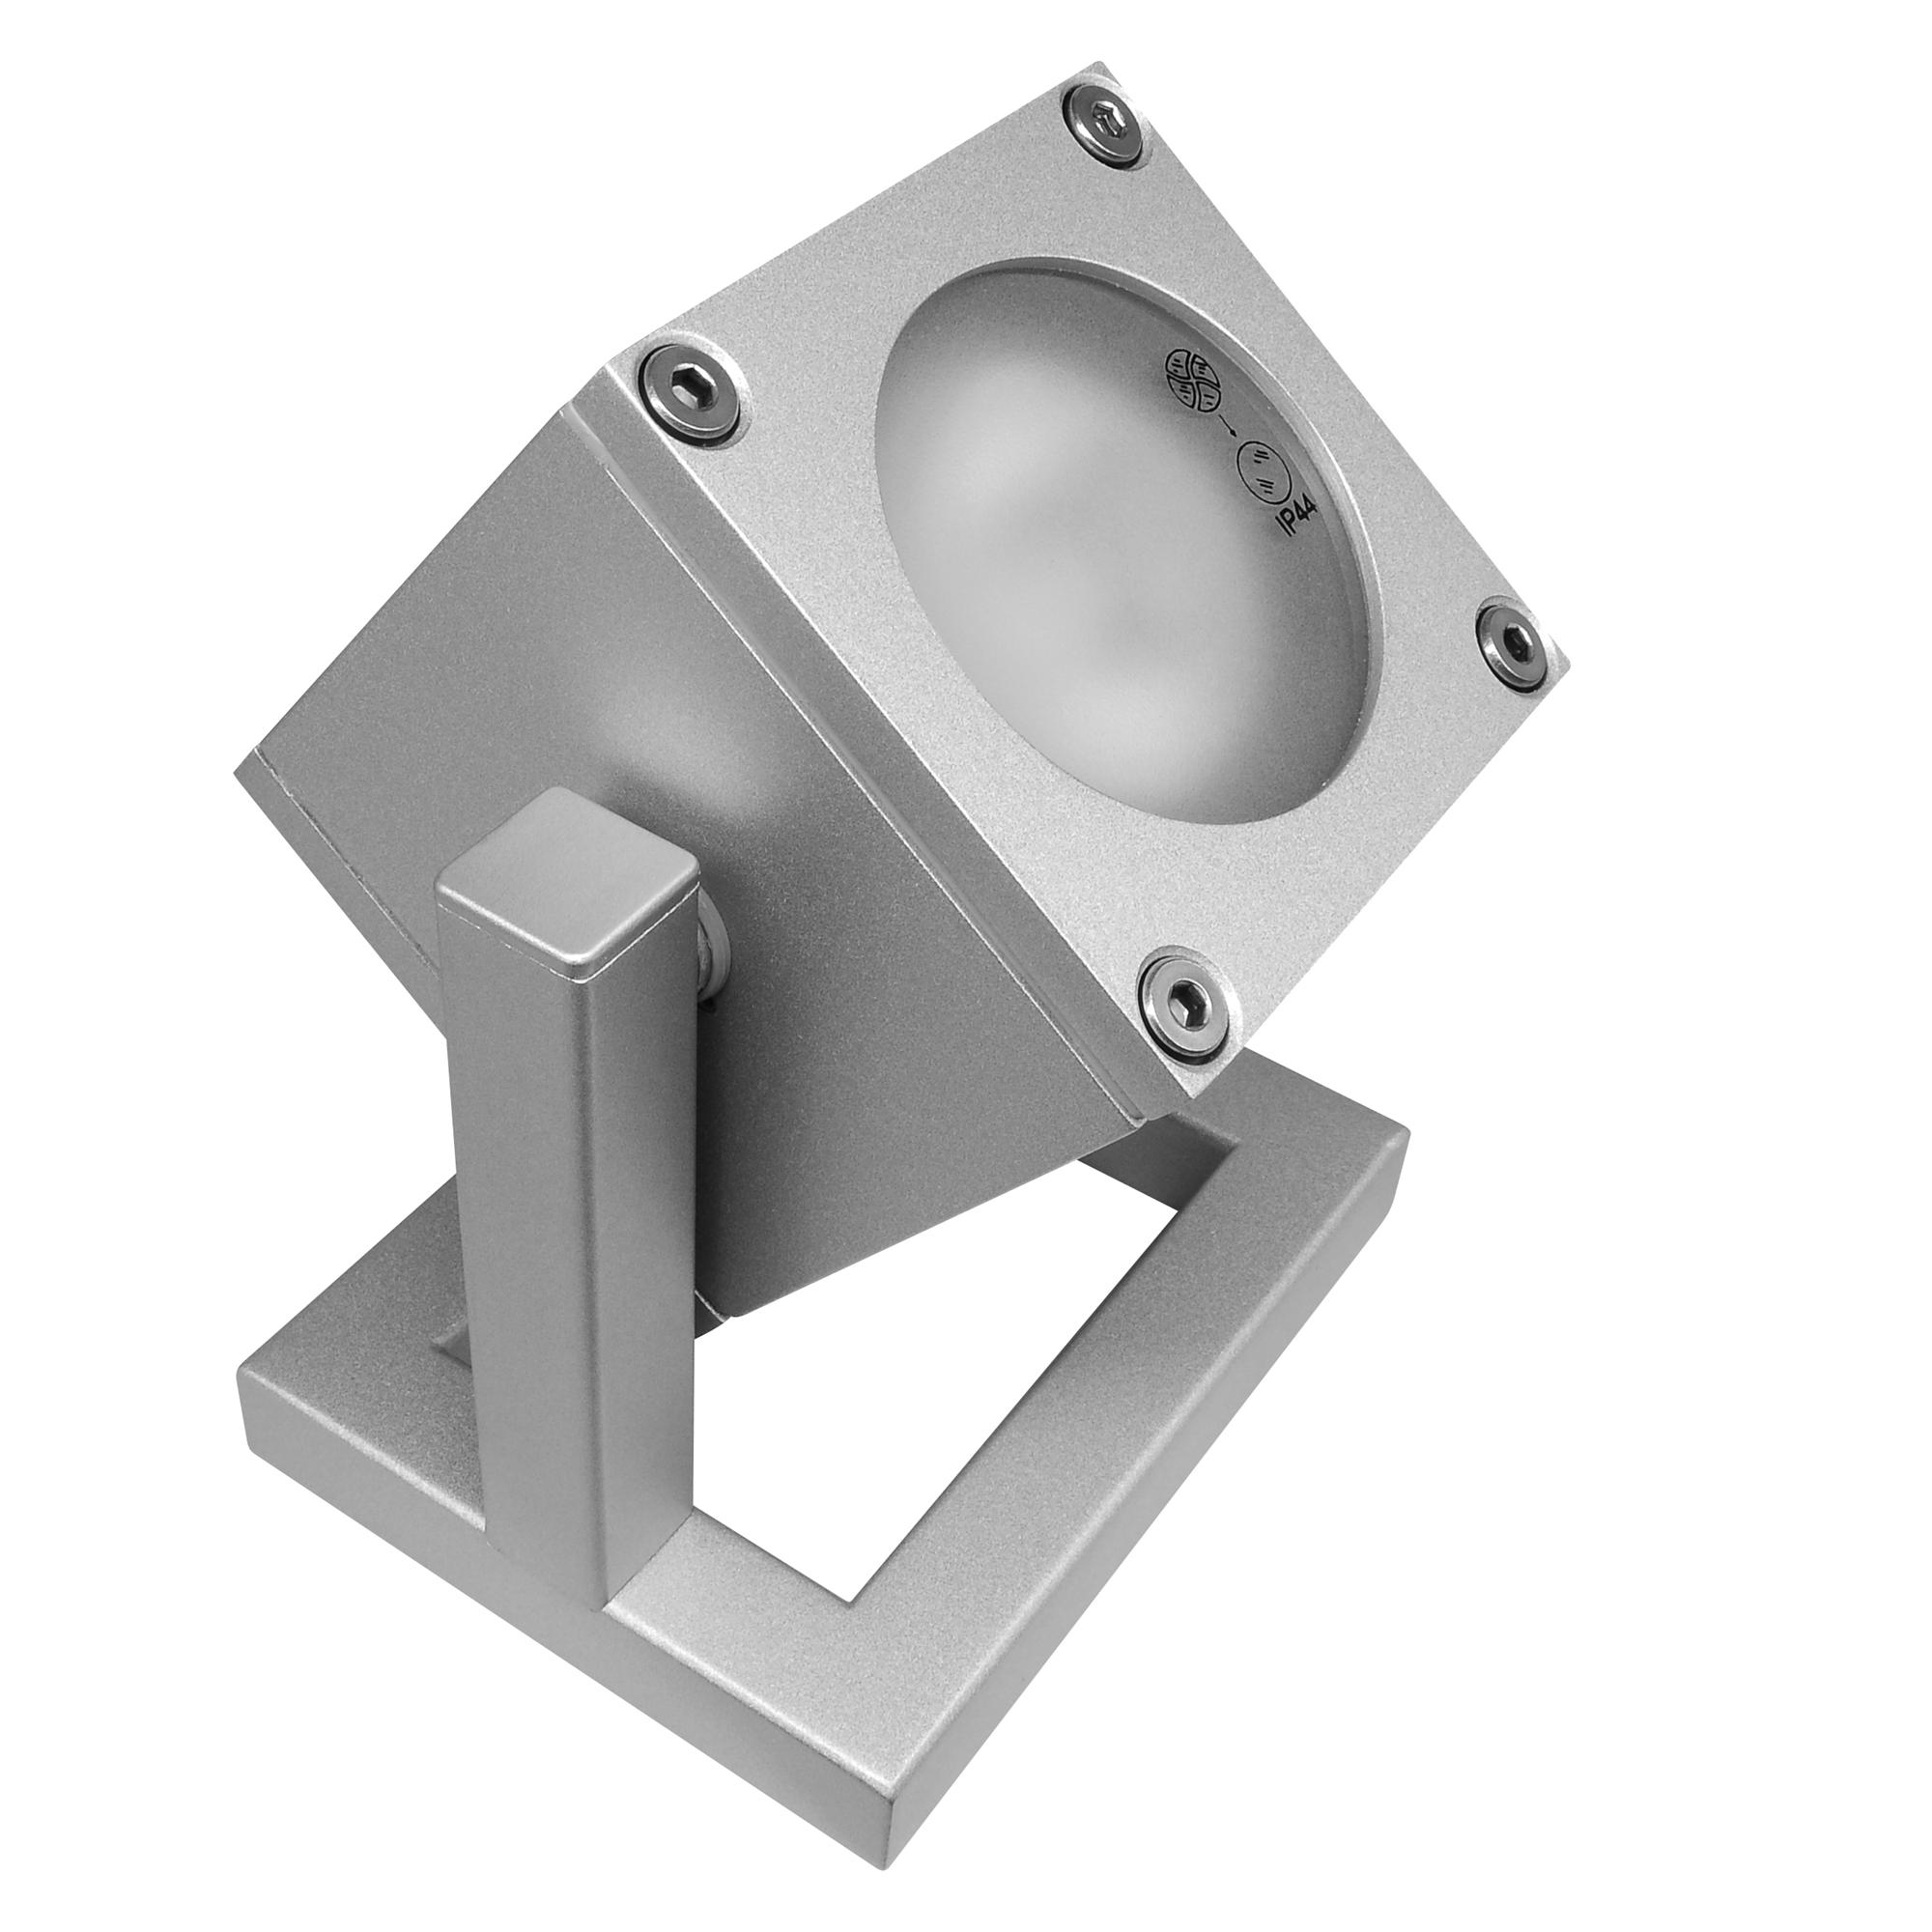 Floor cube spot uplighter silver 35w mr resistor lighting for Floor uplighters